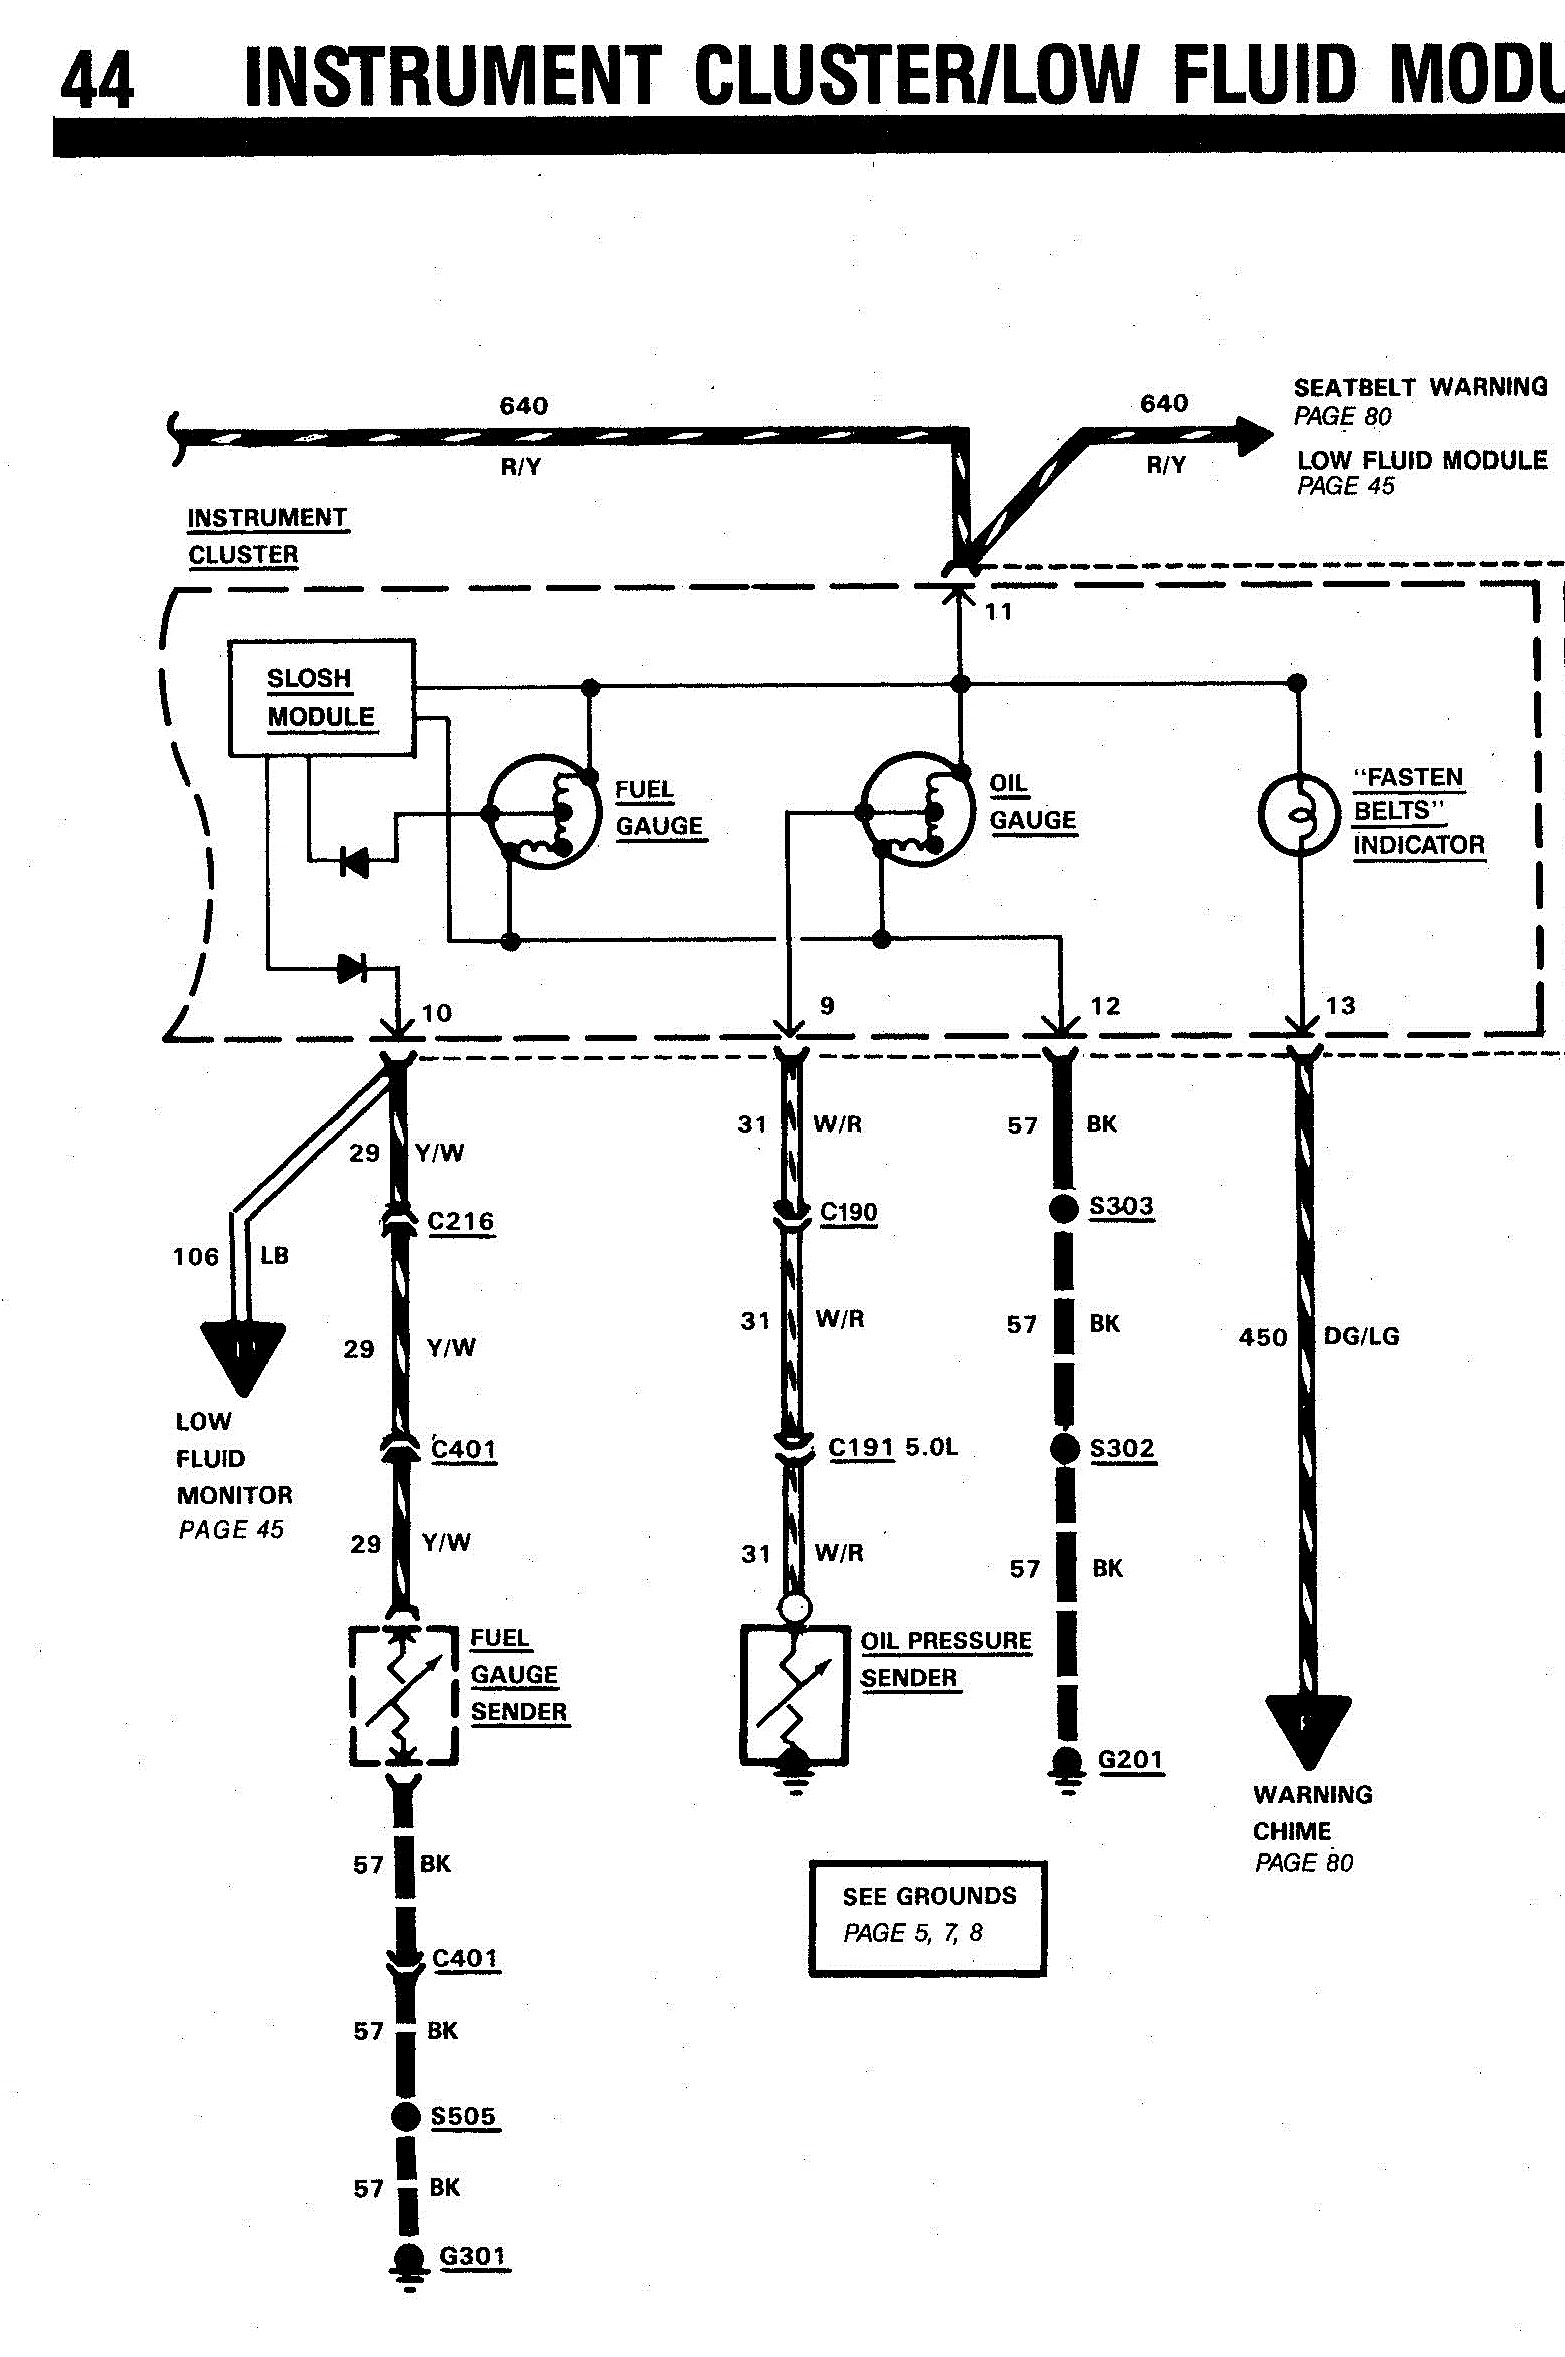 hight resolution of oil wiring diagram wiring diagram oil pressure sensor wiring diagram ford 302 oil sending unit wiring